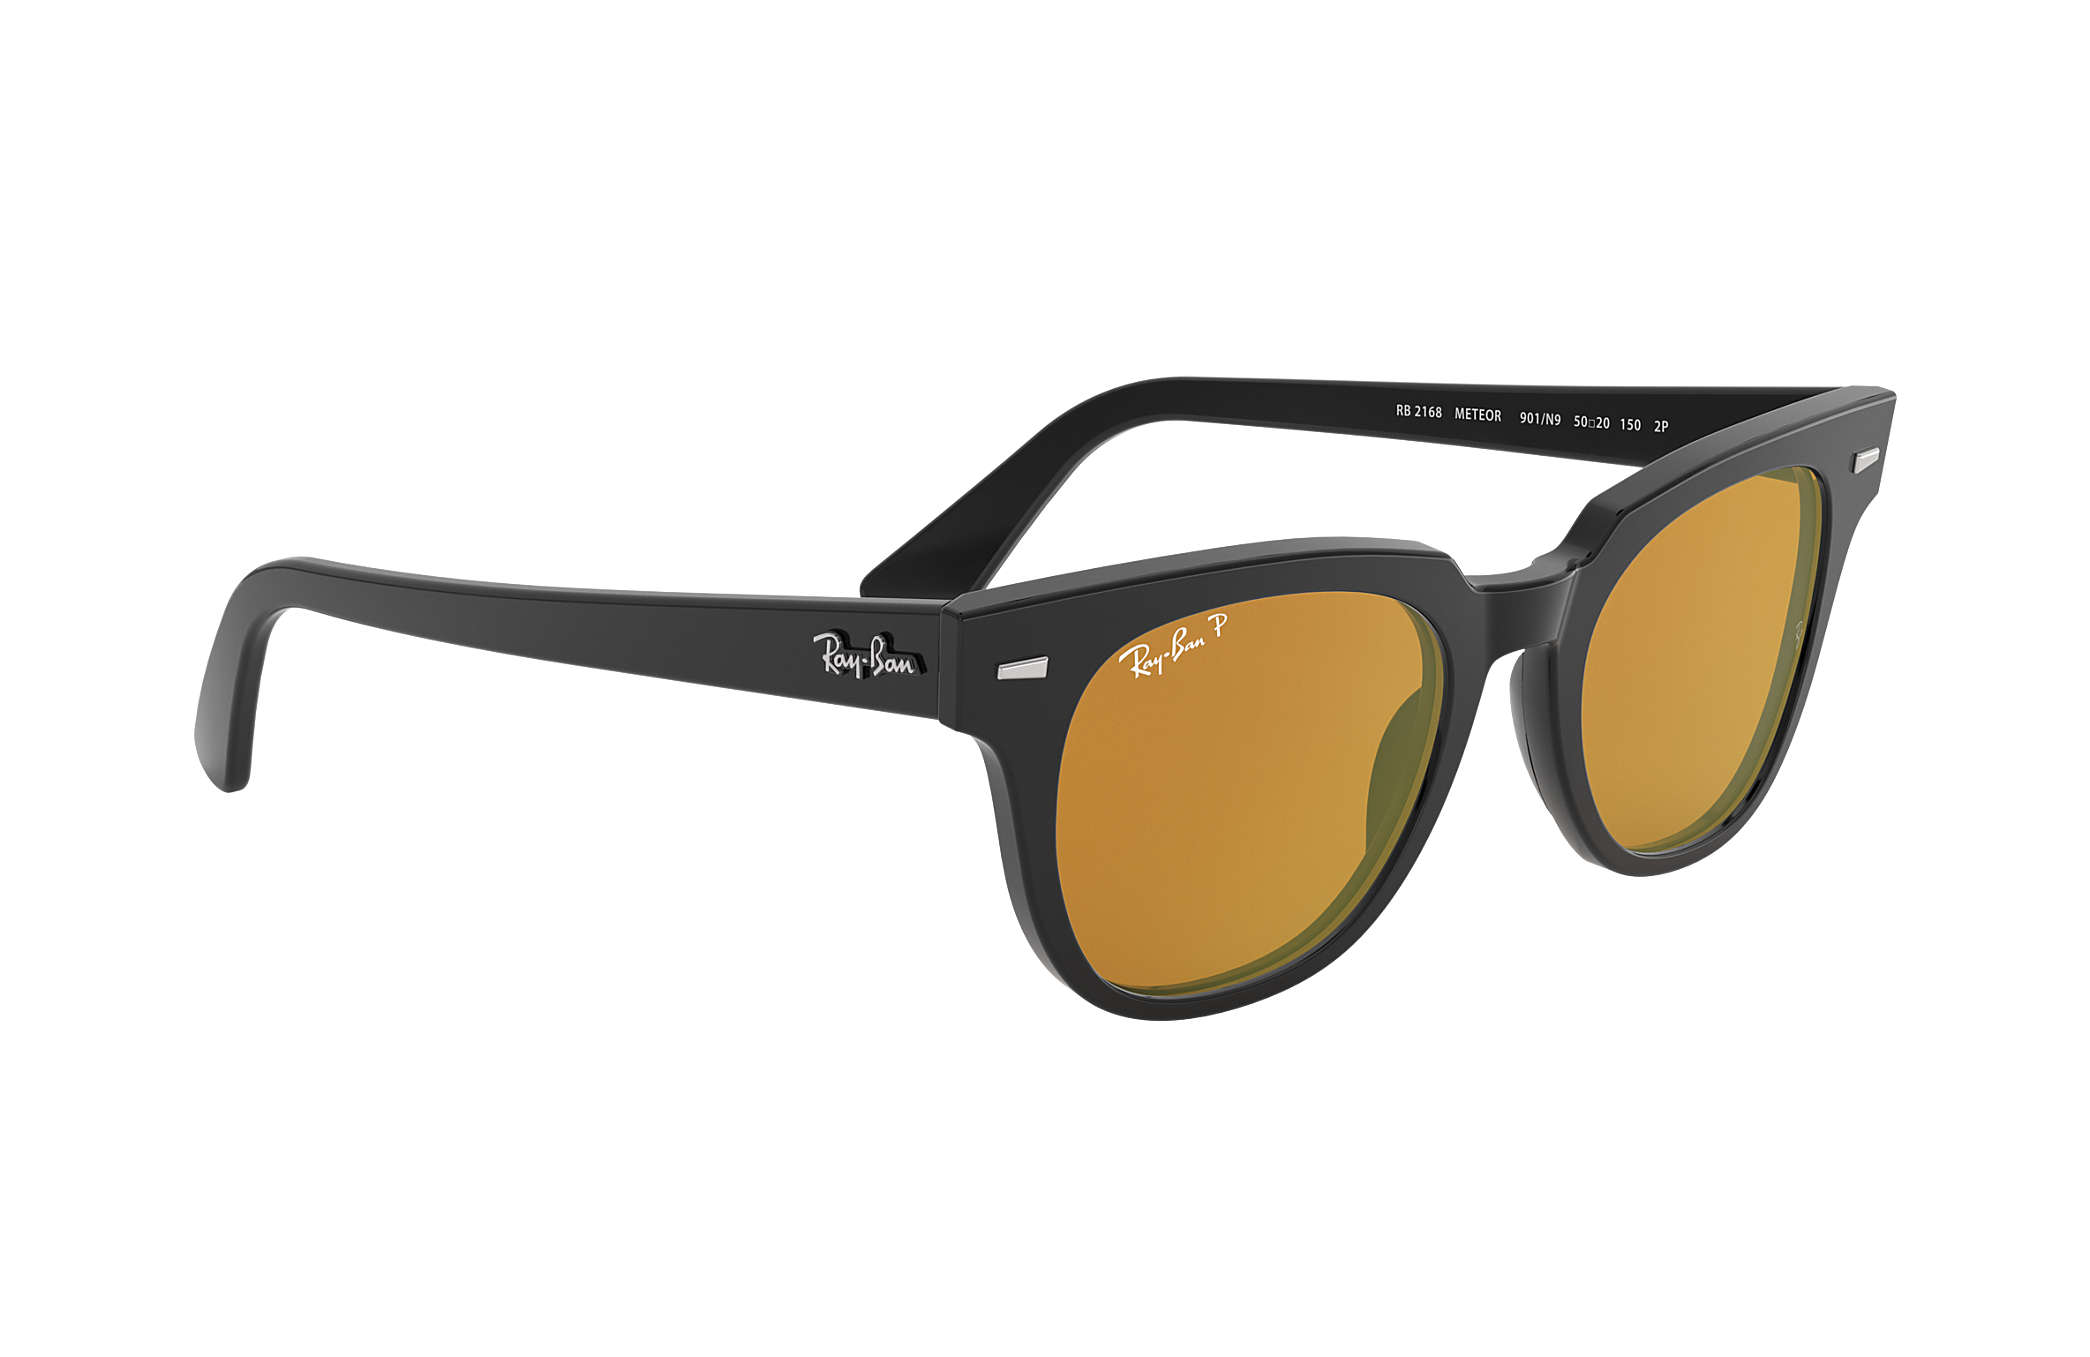 5945a34540 Ray-Ban Meteor Classic RB2168 Black - Acetate - Yellow Polarized ...